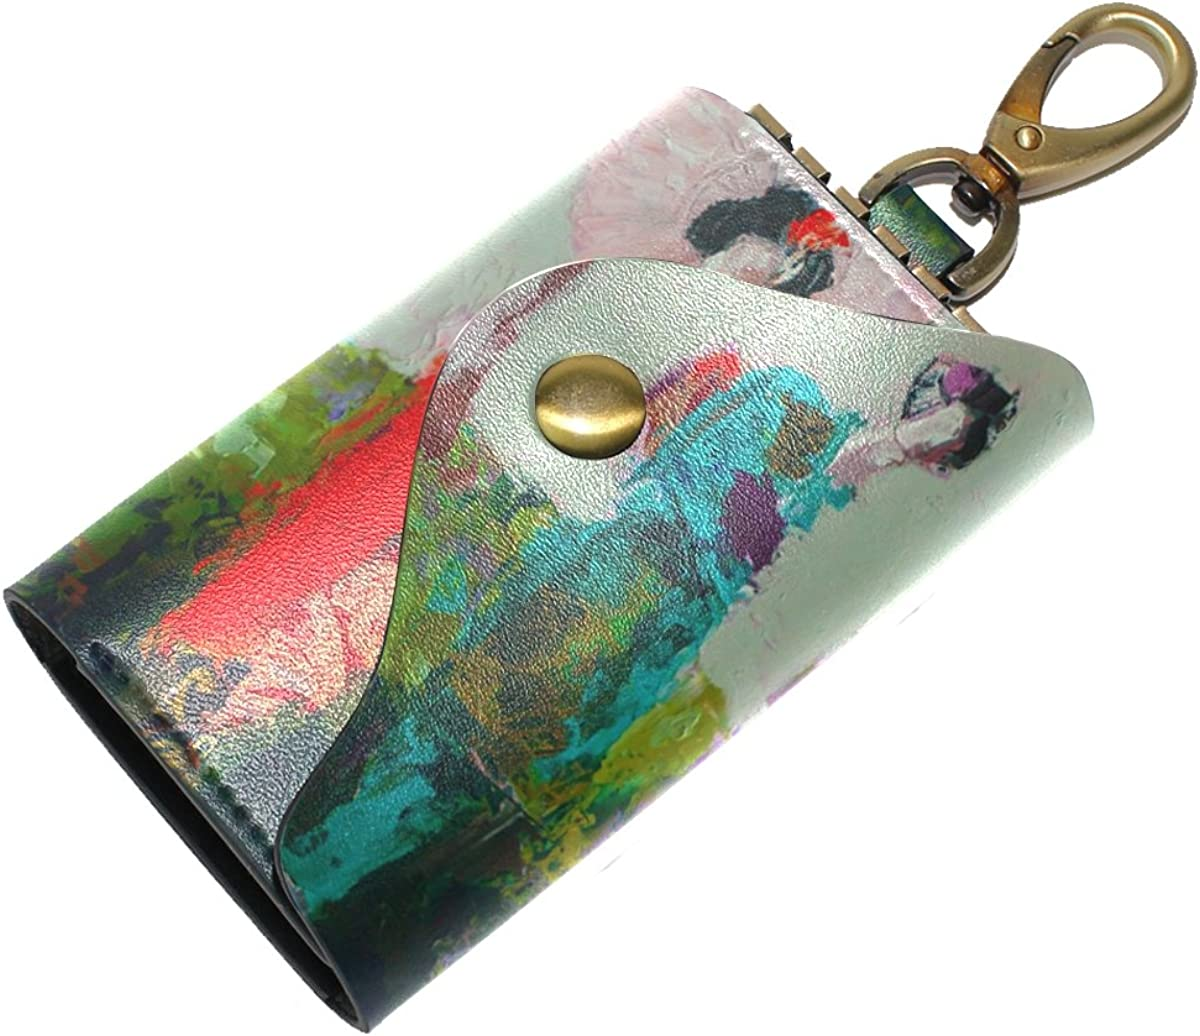 DEYYA Japanese Geisha Girl Leather Key Case Wallets Unisex Keychain Key Holder with 6 Hooks Snap Closure